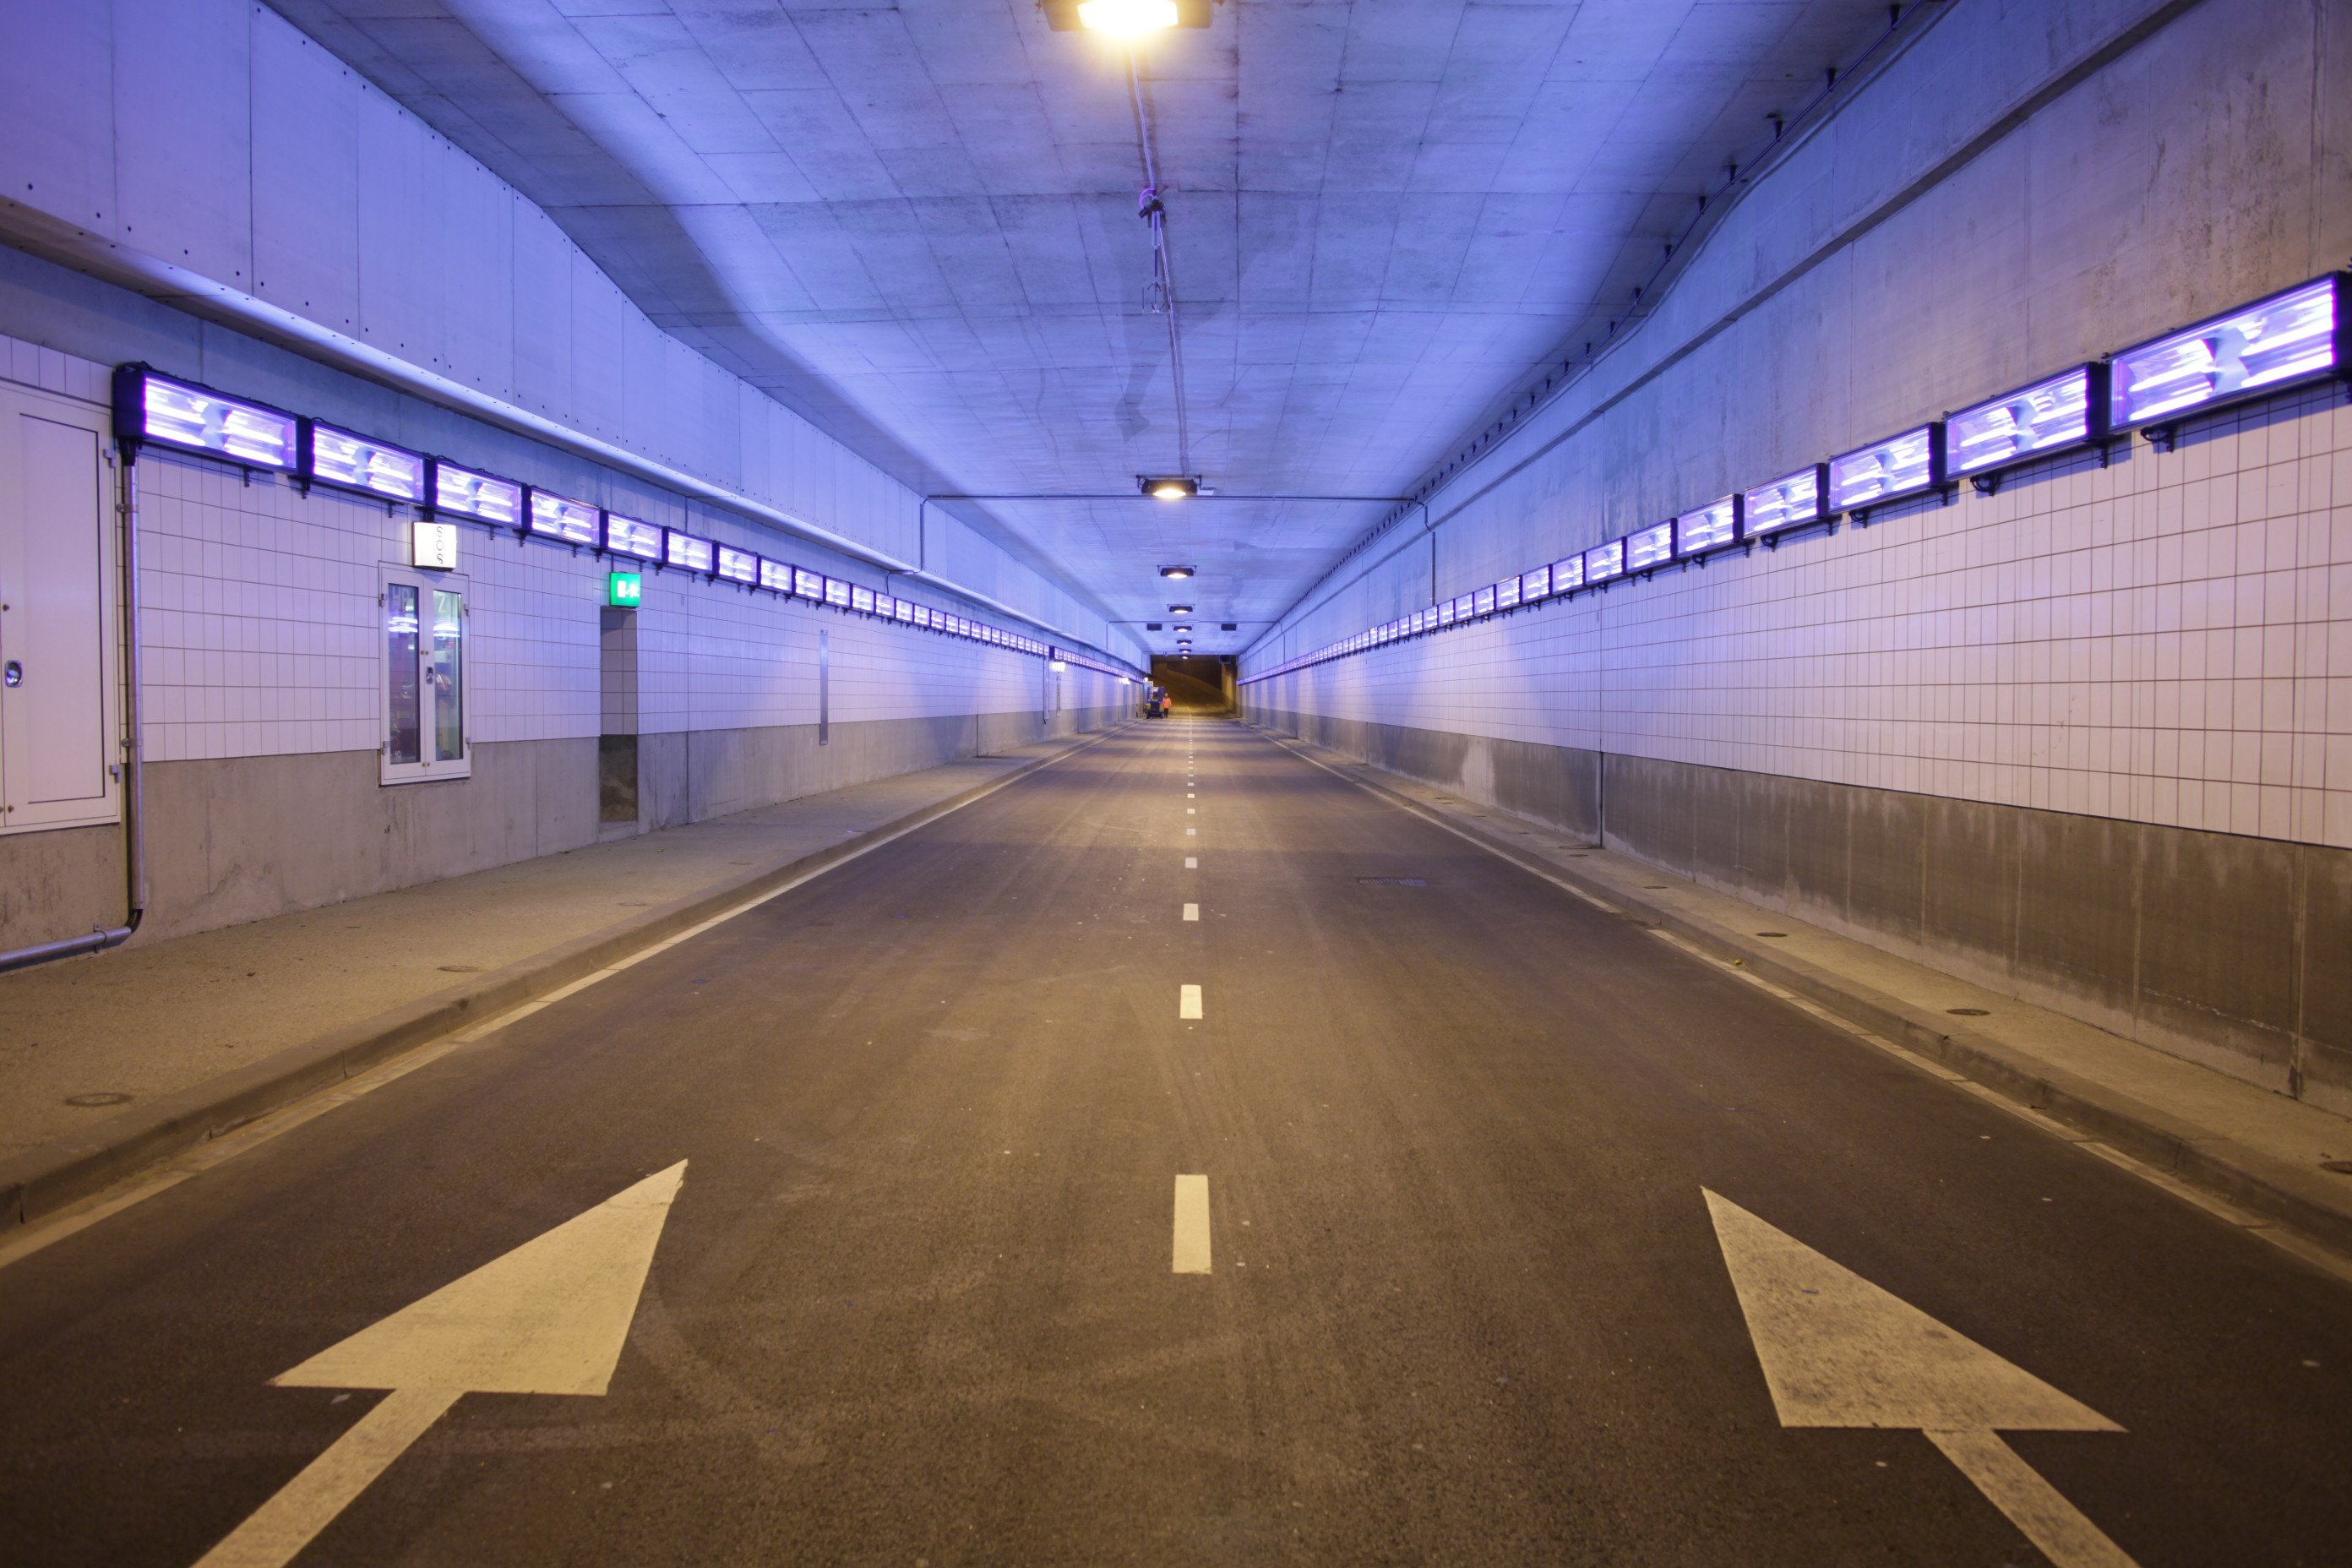 The Hague performs an innovative environmental experiment in the Koningstunnel